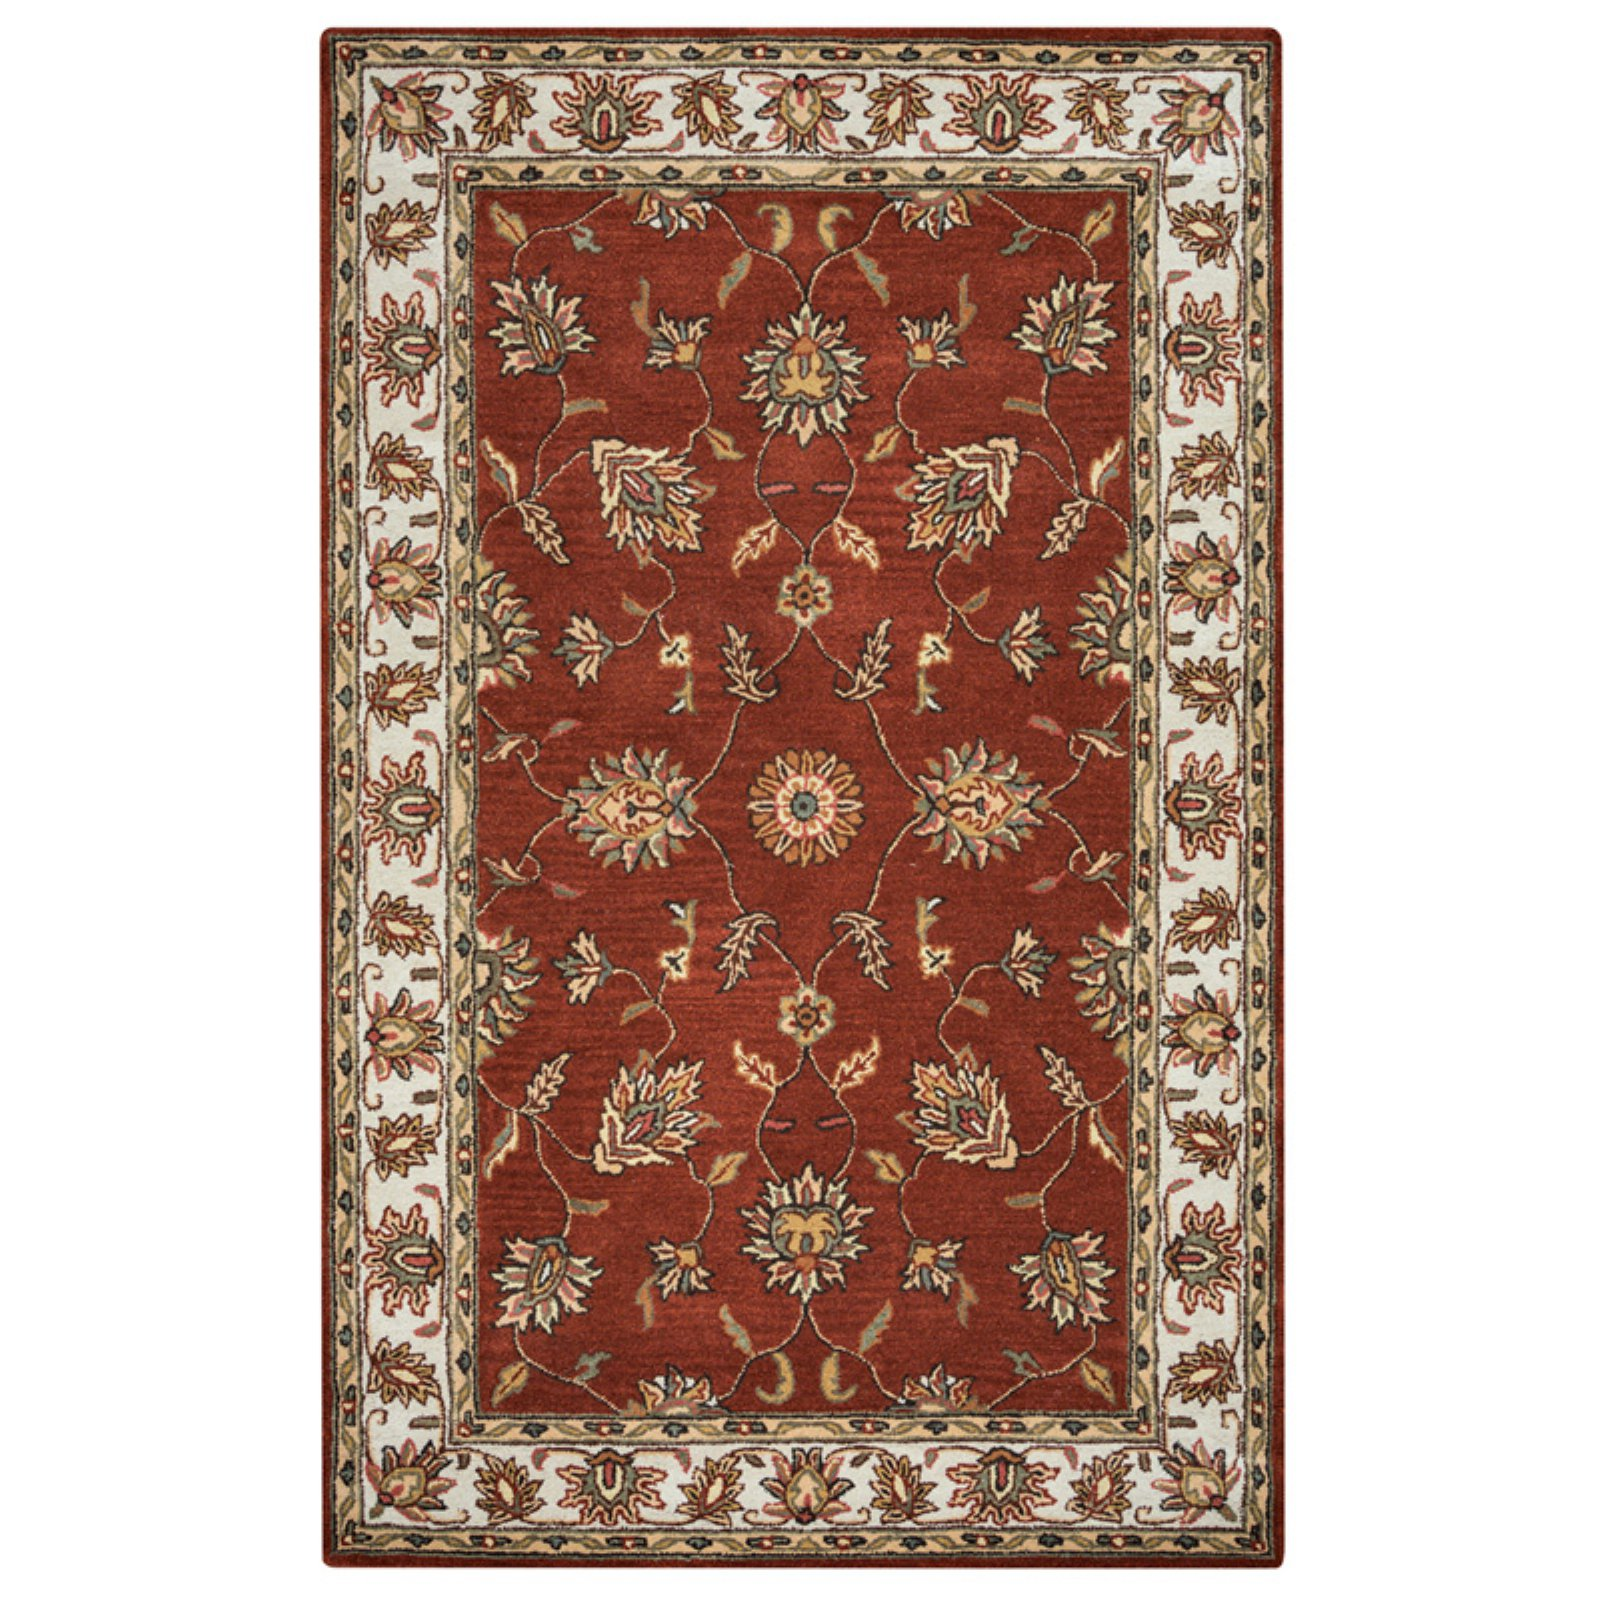 Rizzy Home Volare VO1244 Rug - (9 Foot x 12 Foot)